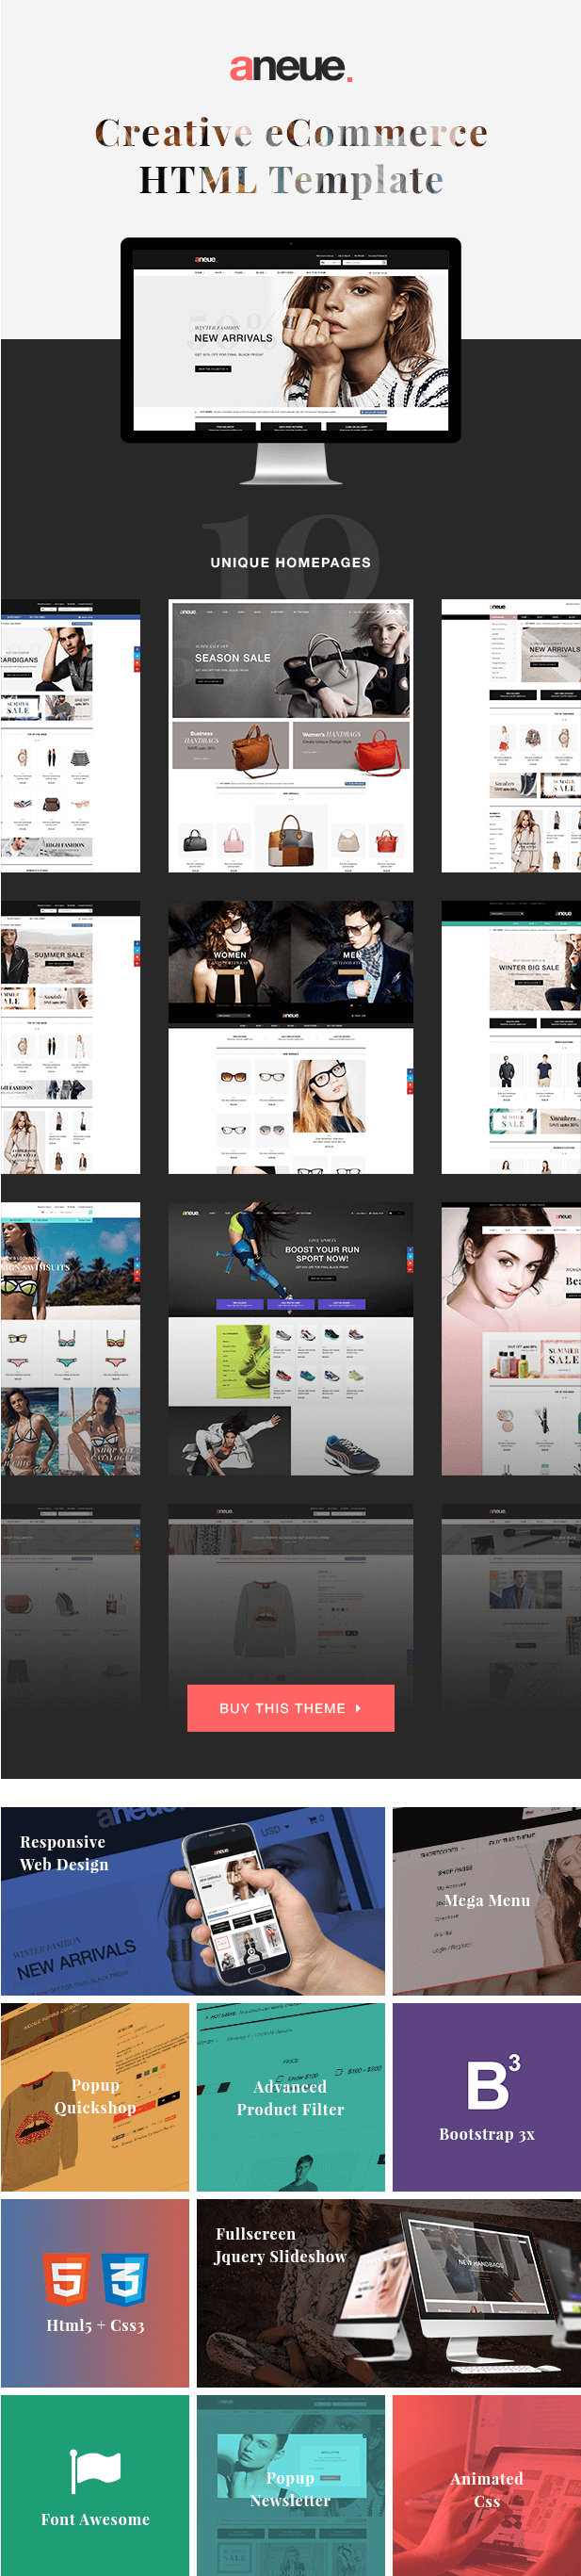 Aneue - Creative eCommerce HTML Template   eCommerce, Template and ...